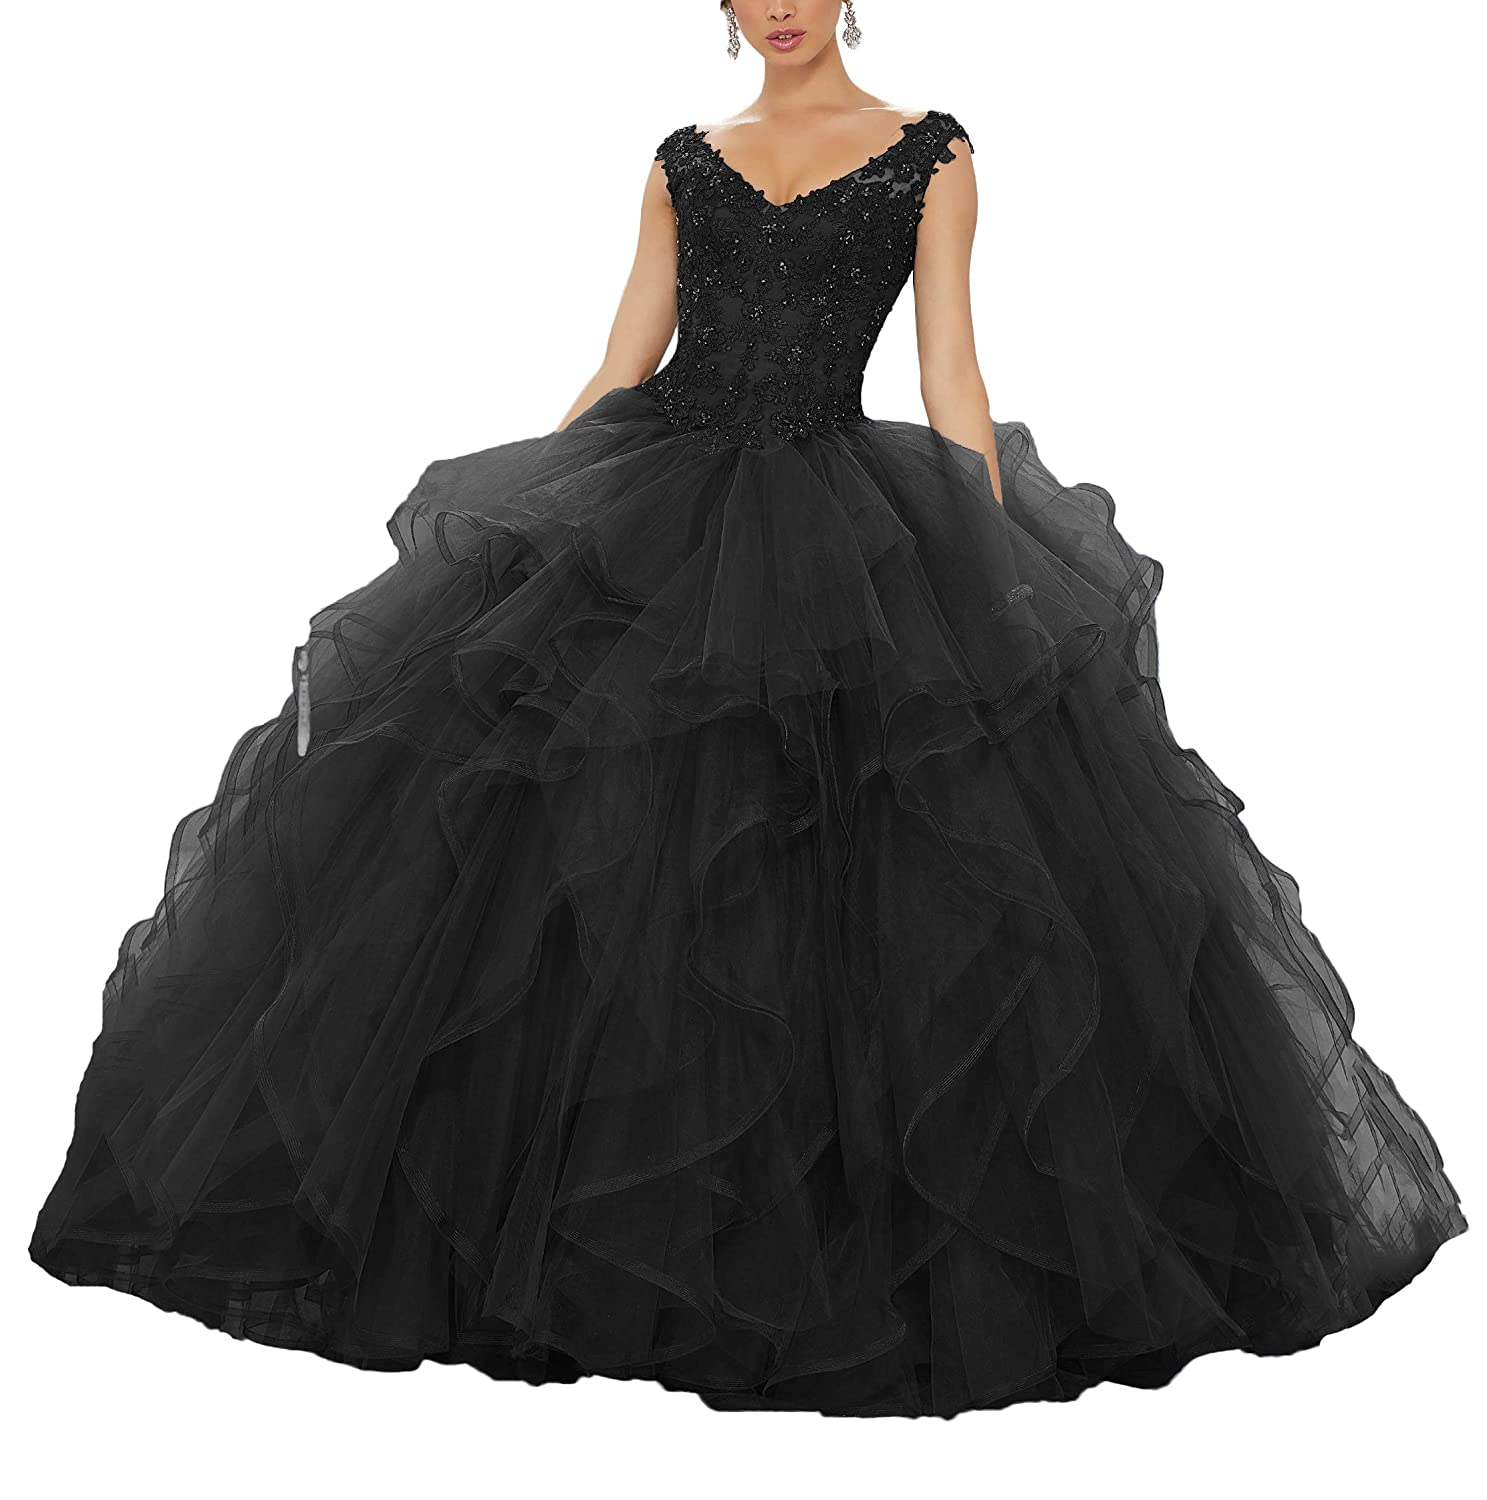 Black Yisha Bello Women's Applique Beaded Organza Ruffles Prom Ball Gowns VNeck Lace Up Quinceanera Dresses